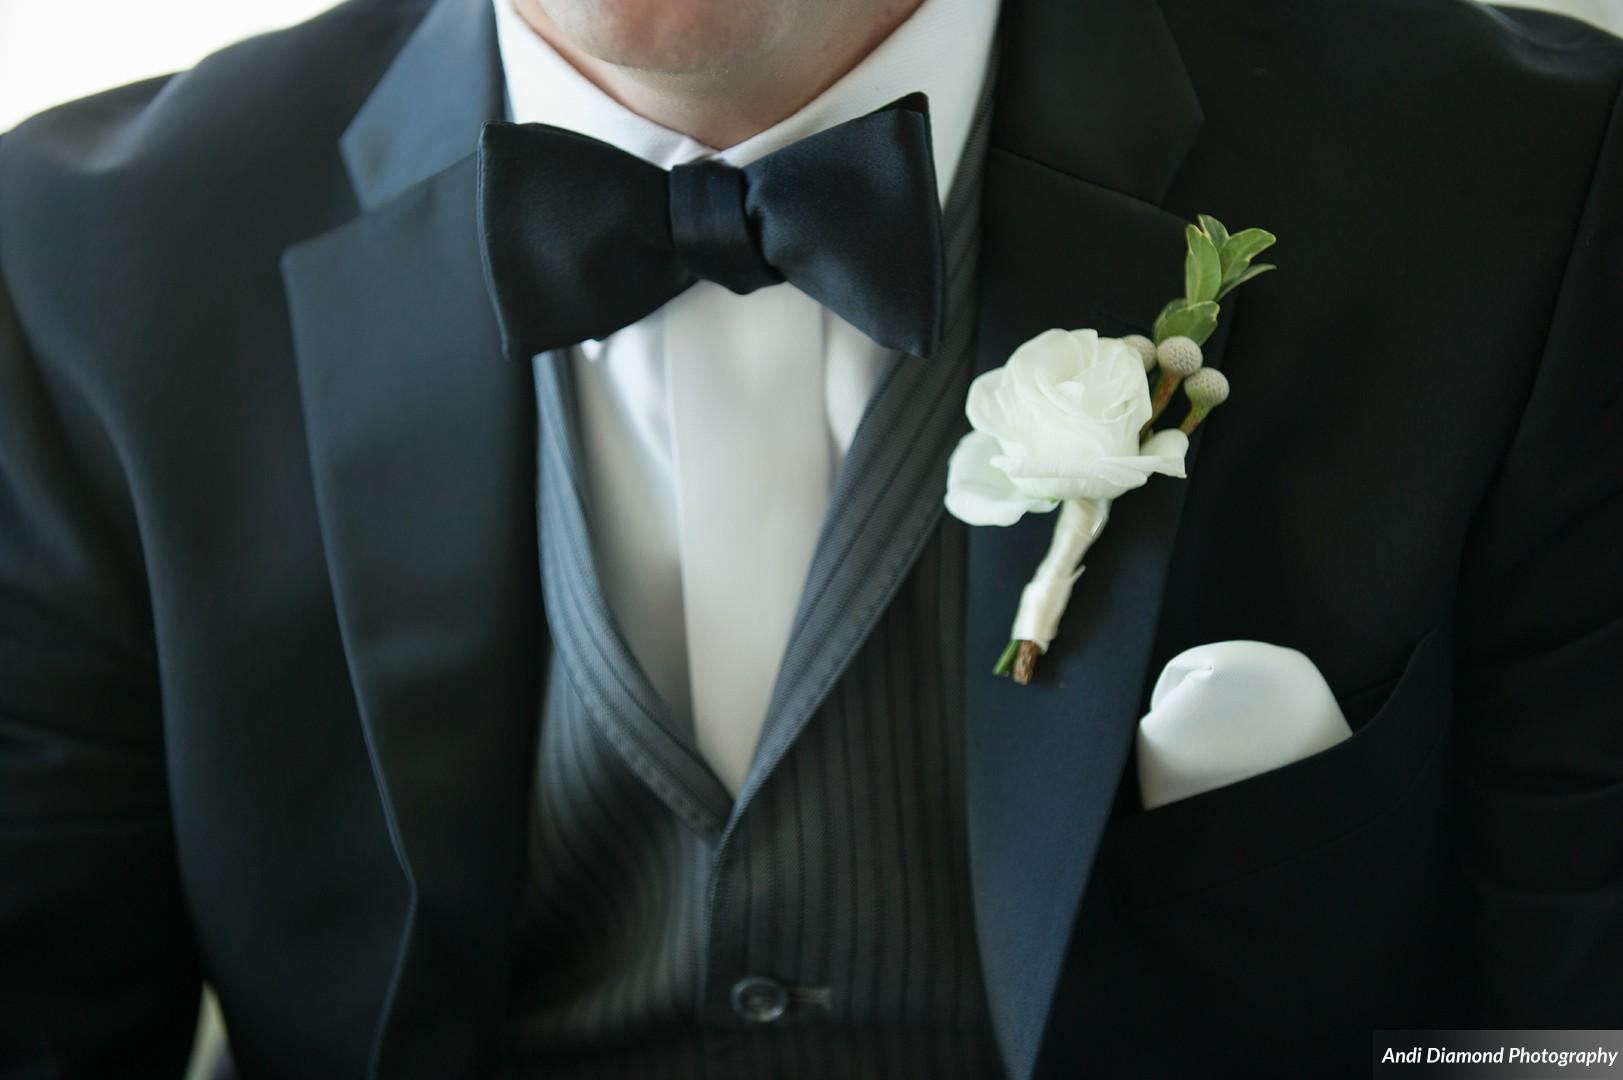 The groom wore a sharp three piece suit in complimenting shades of charcoal with pops of ivory details.